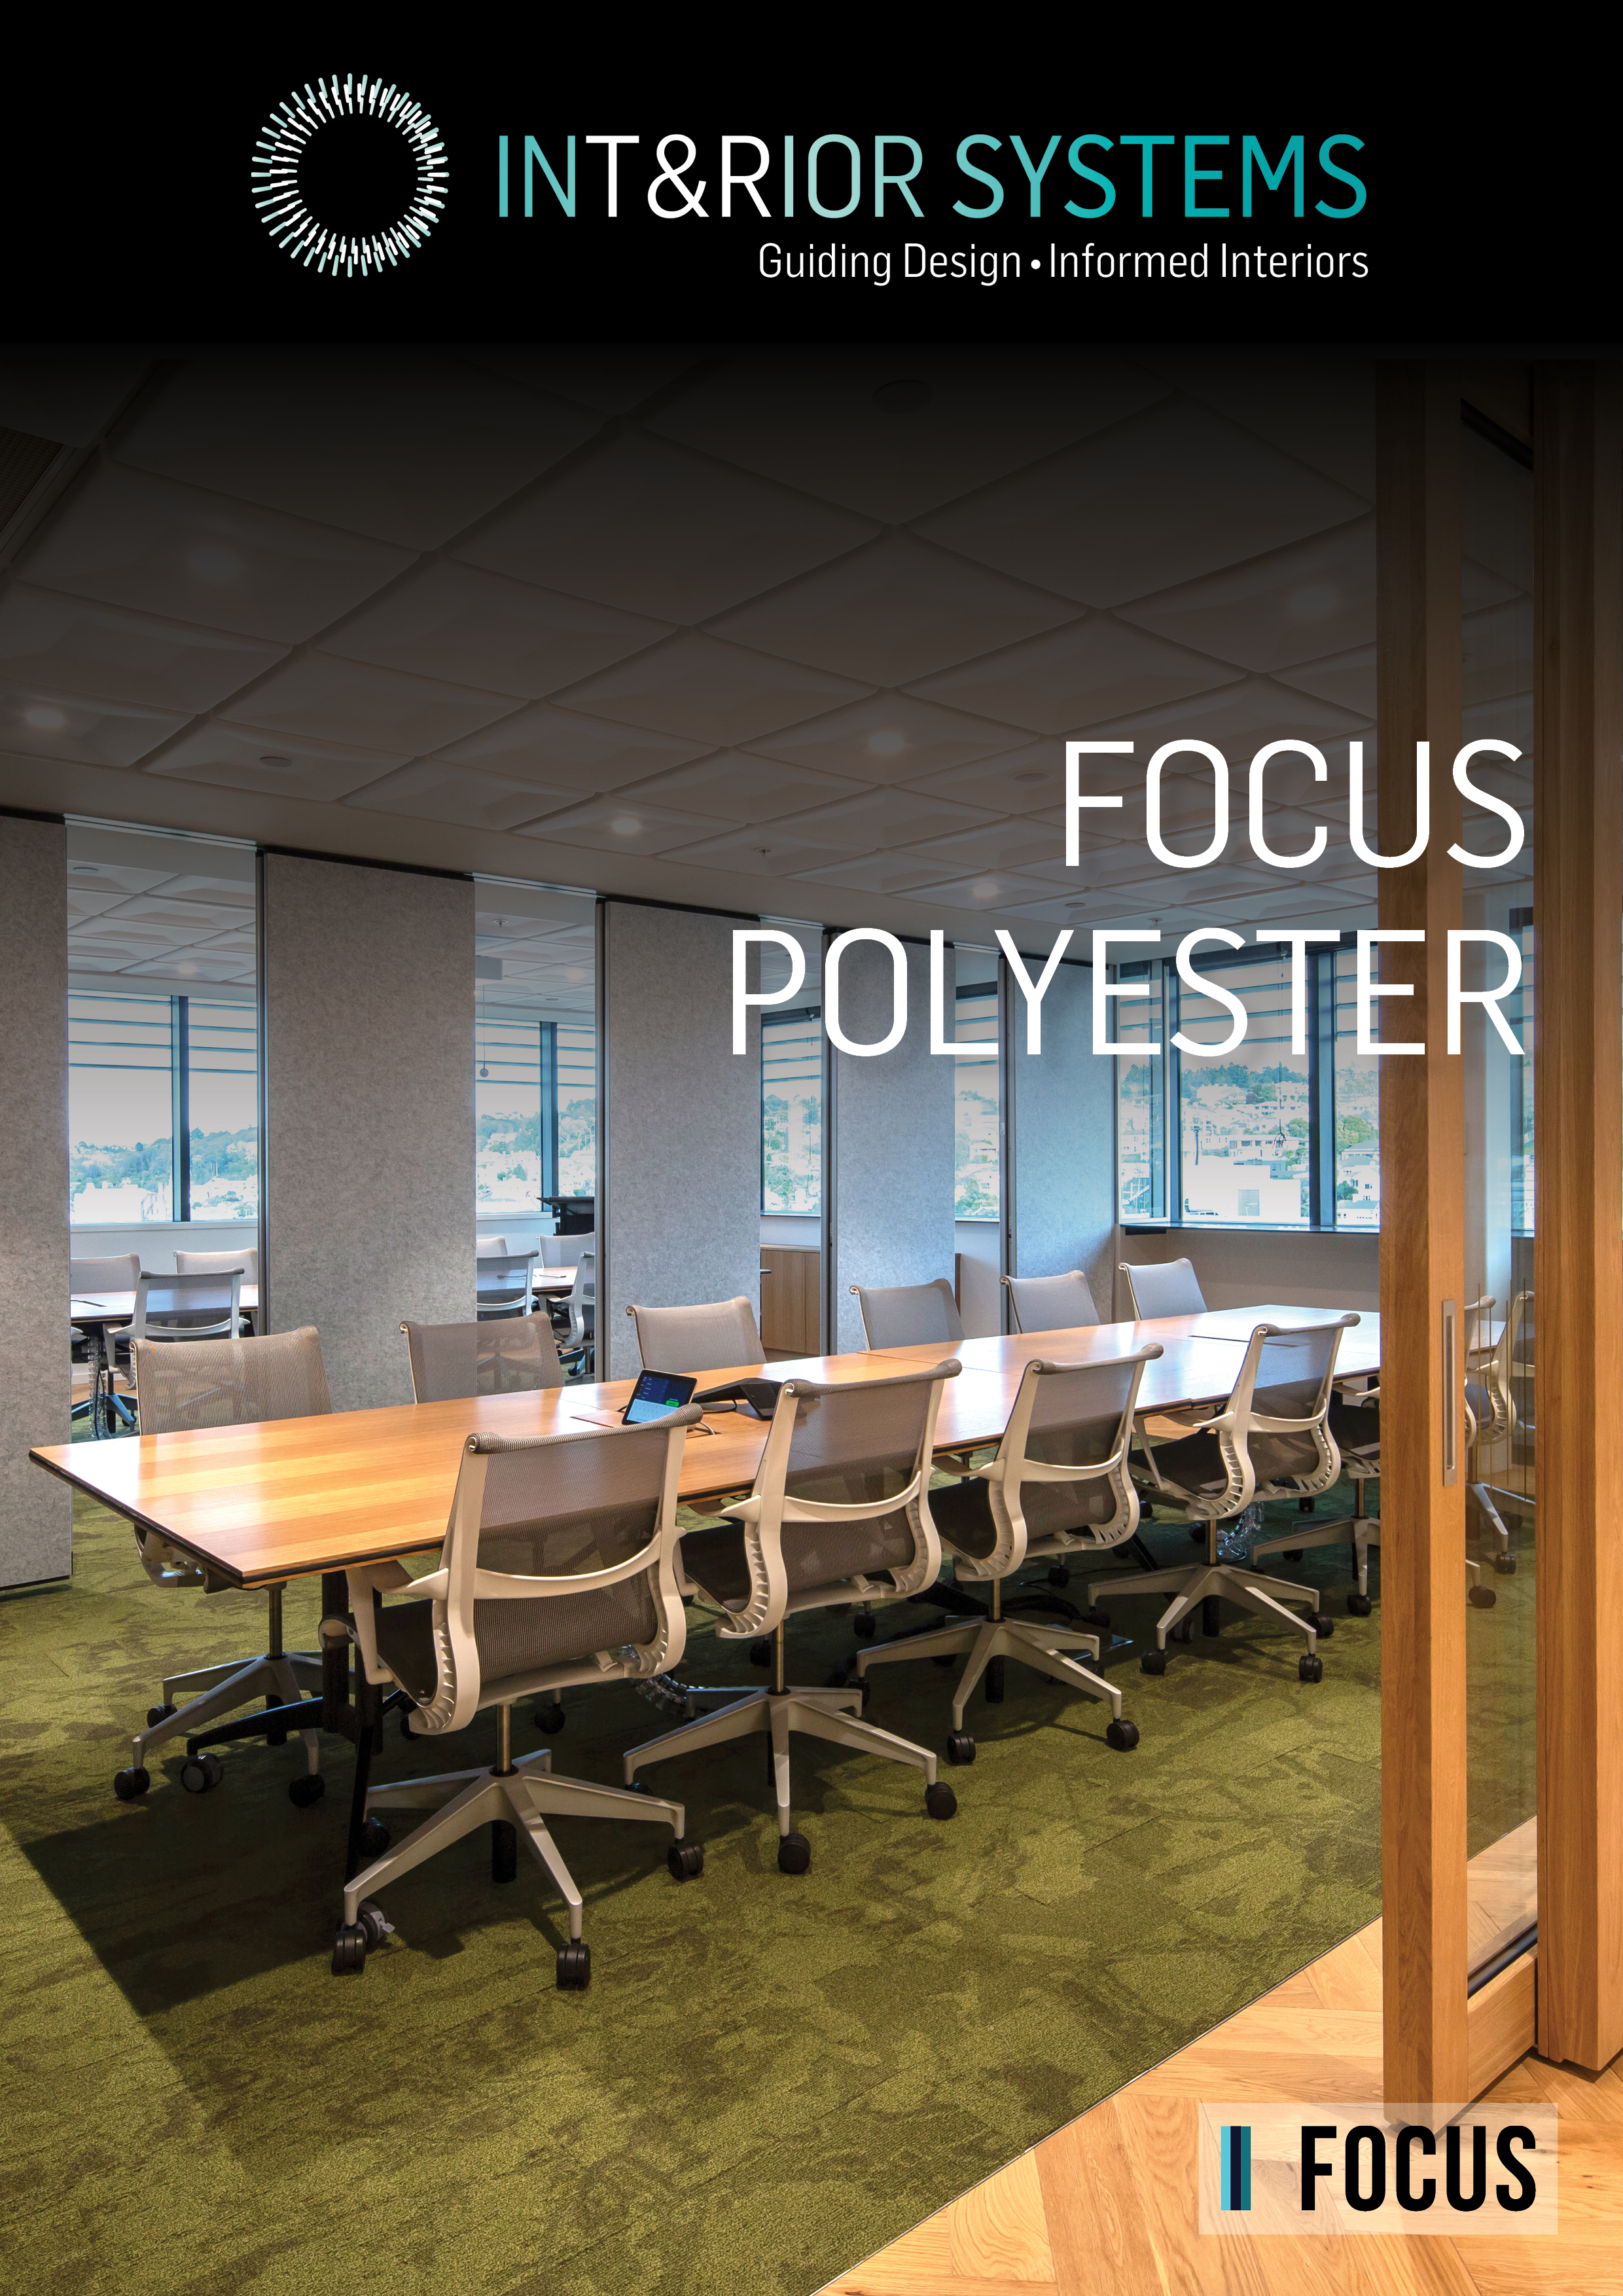 FOCUS POLYESTER